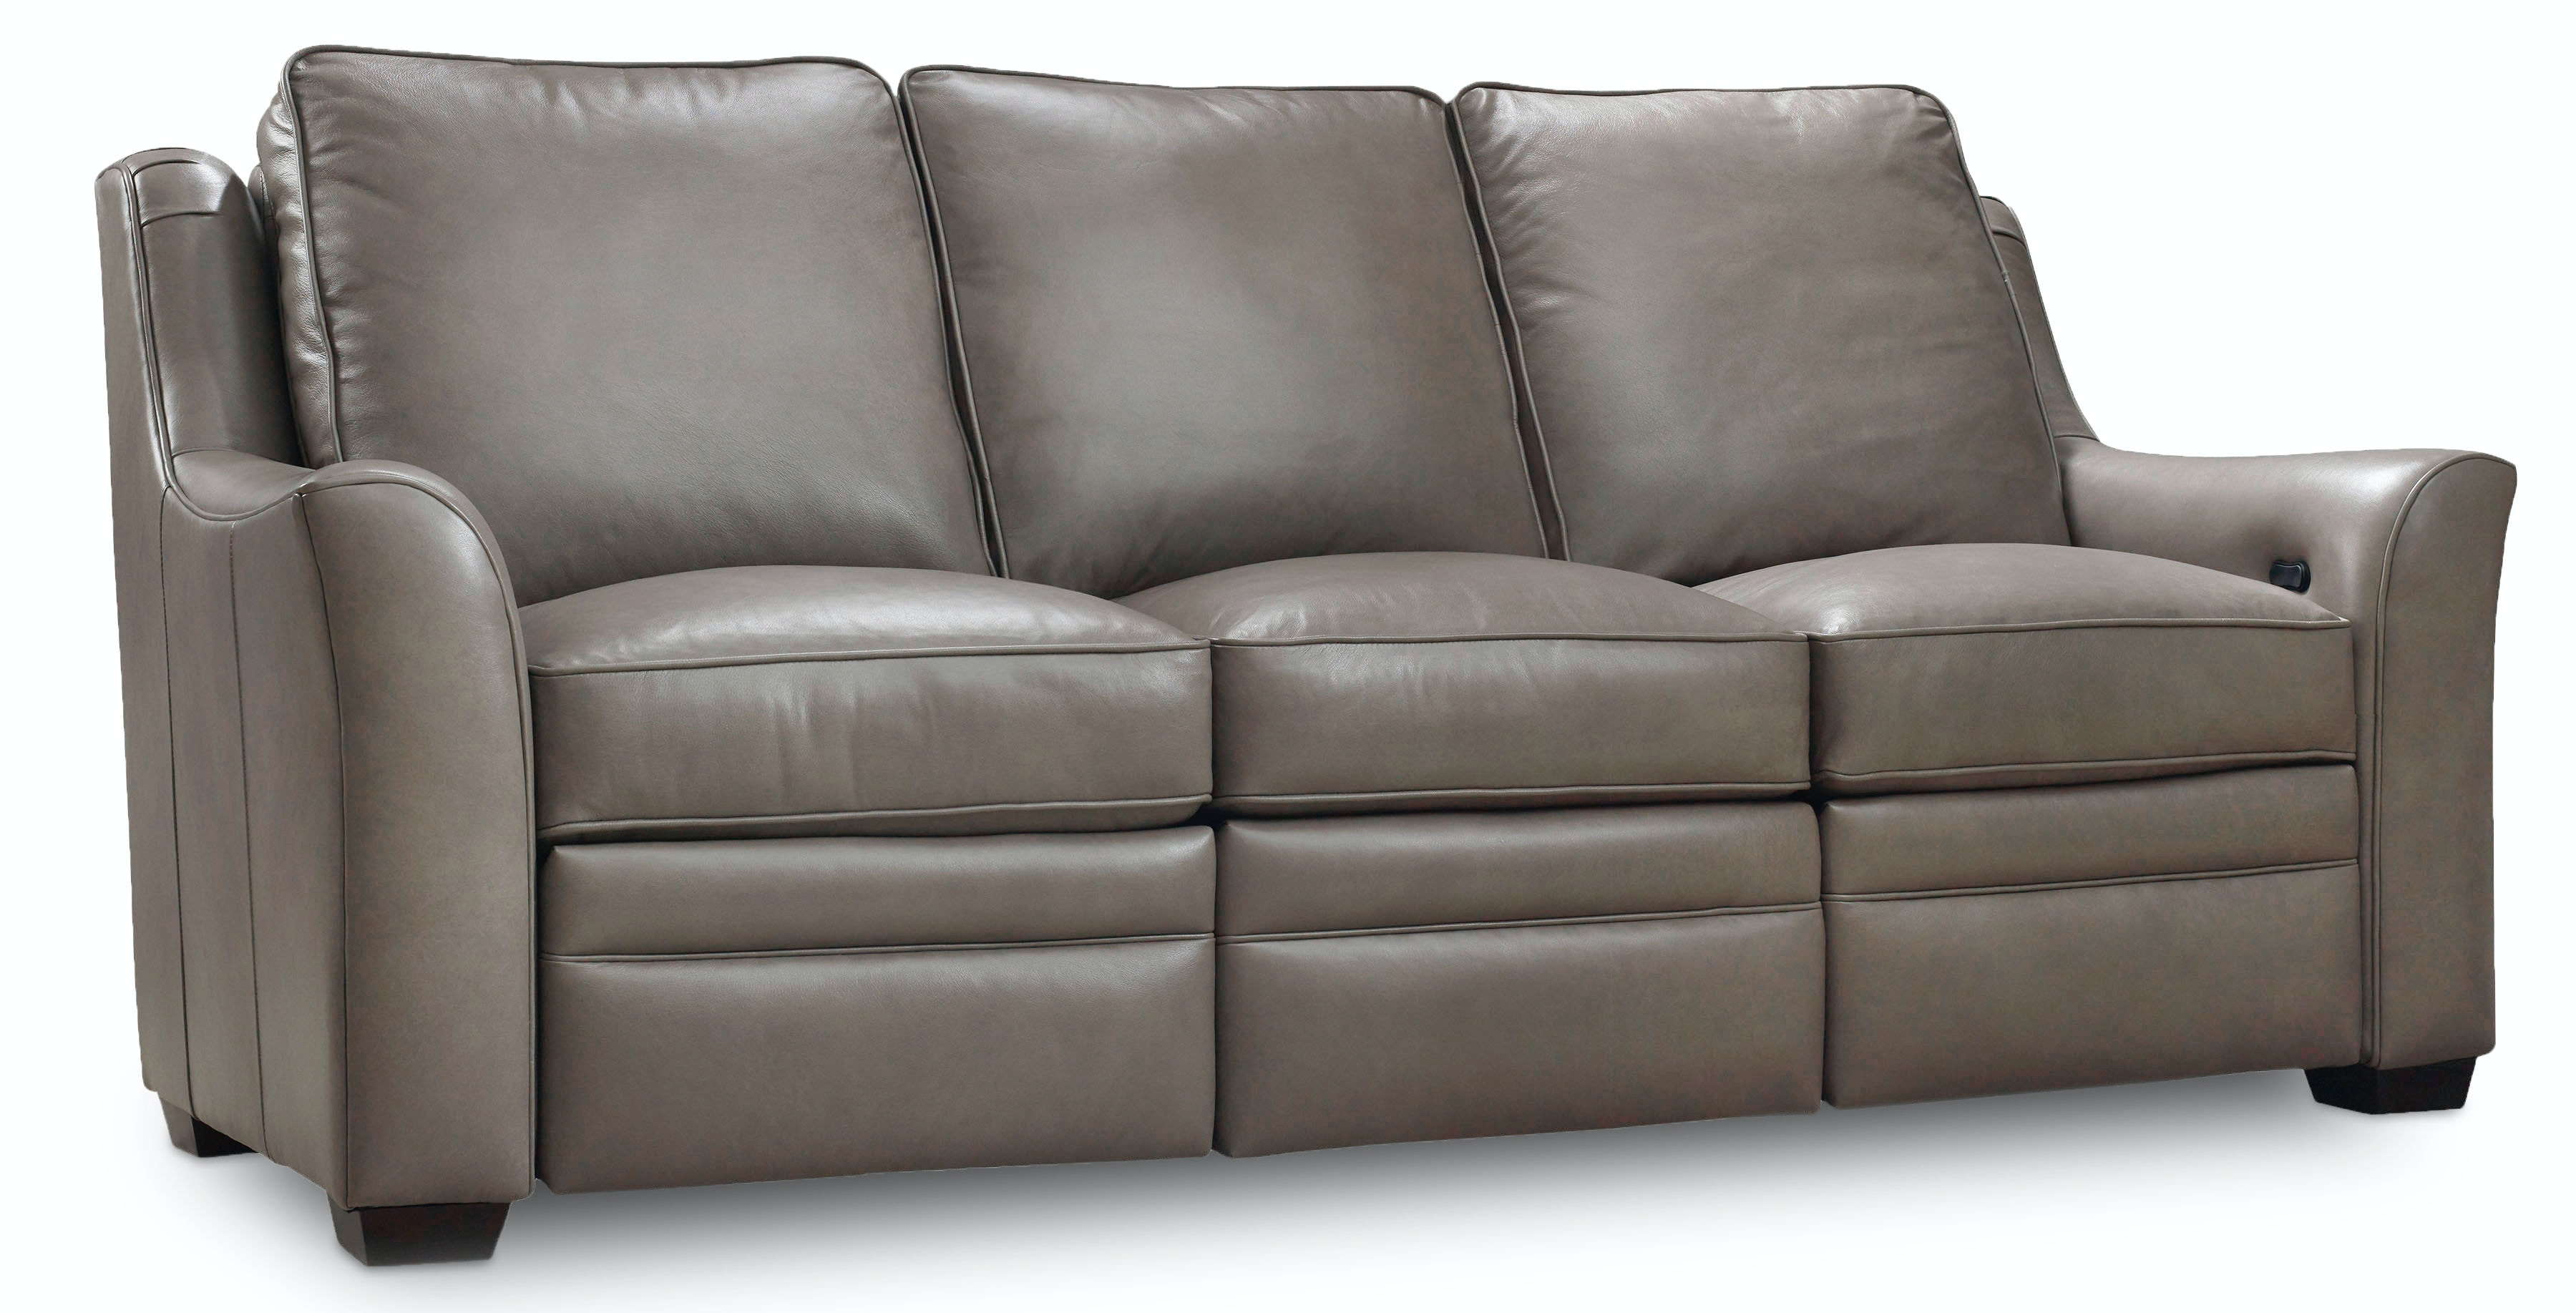 Bradington Young Furniture Kerley Sofa   Full Recline At Both Arms 932 90